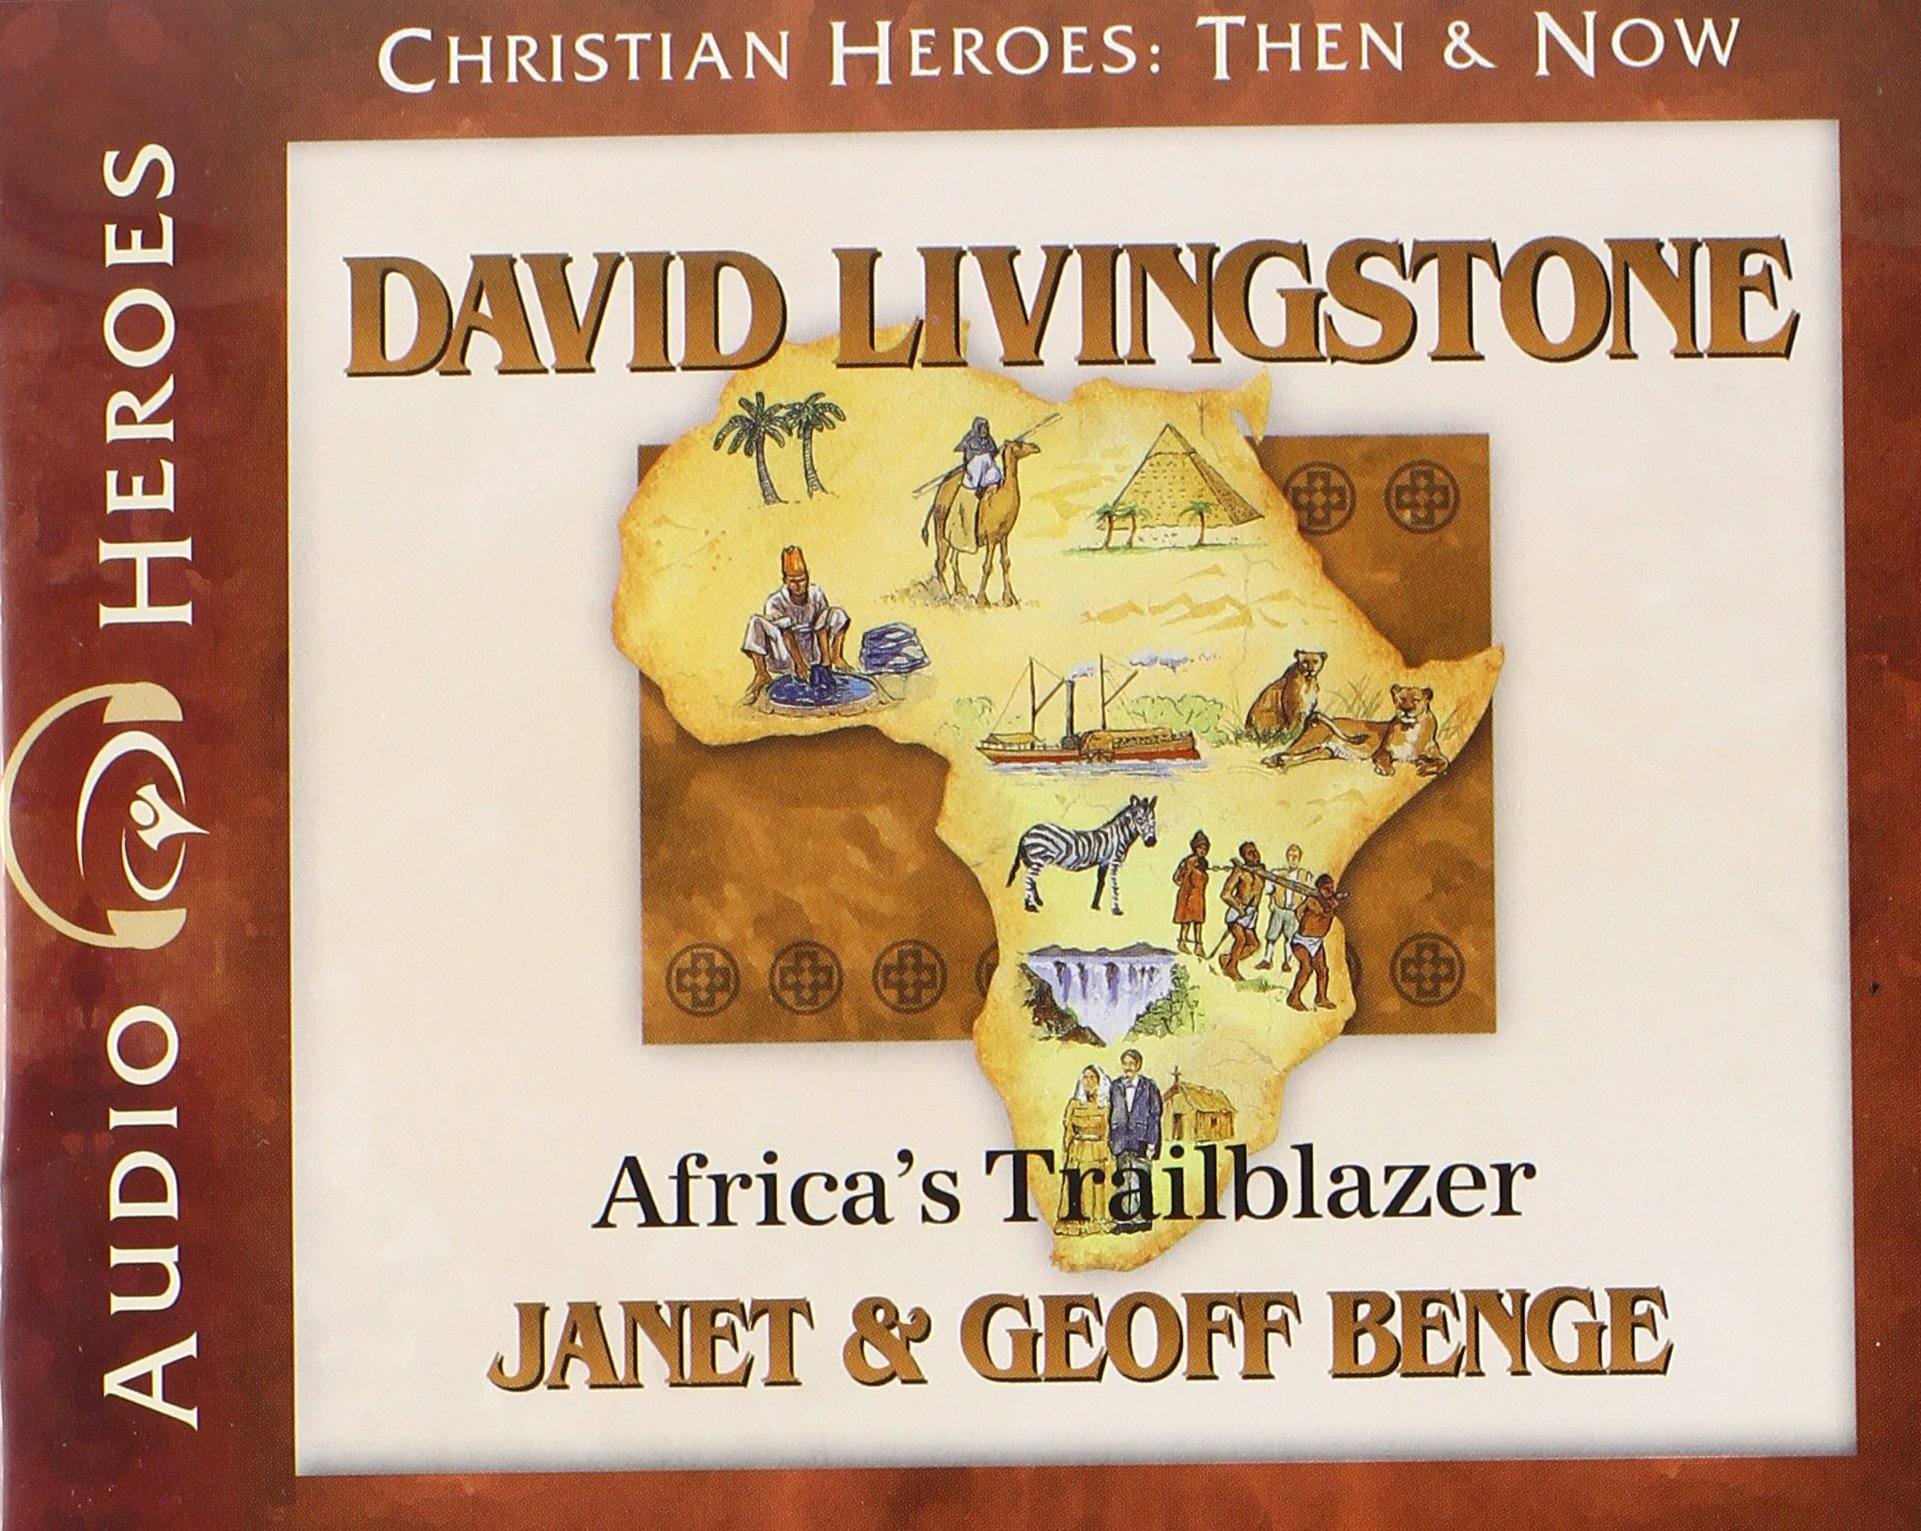 David Livingstone Audiobook: Africa's Trailblazer (Christian Heroes: Then and Now) (Christian Heroes: Then & Now)